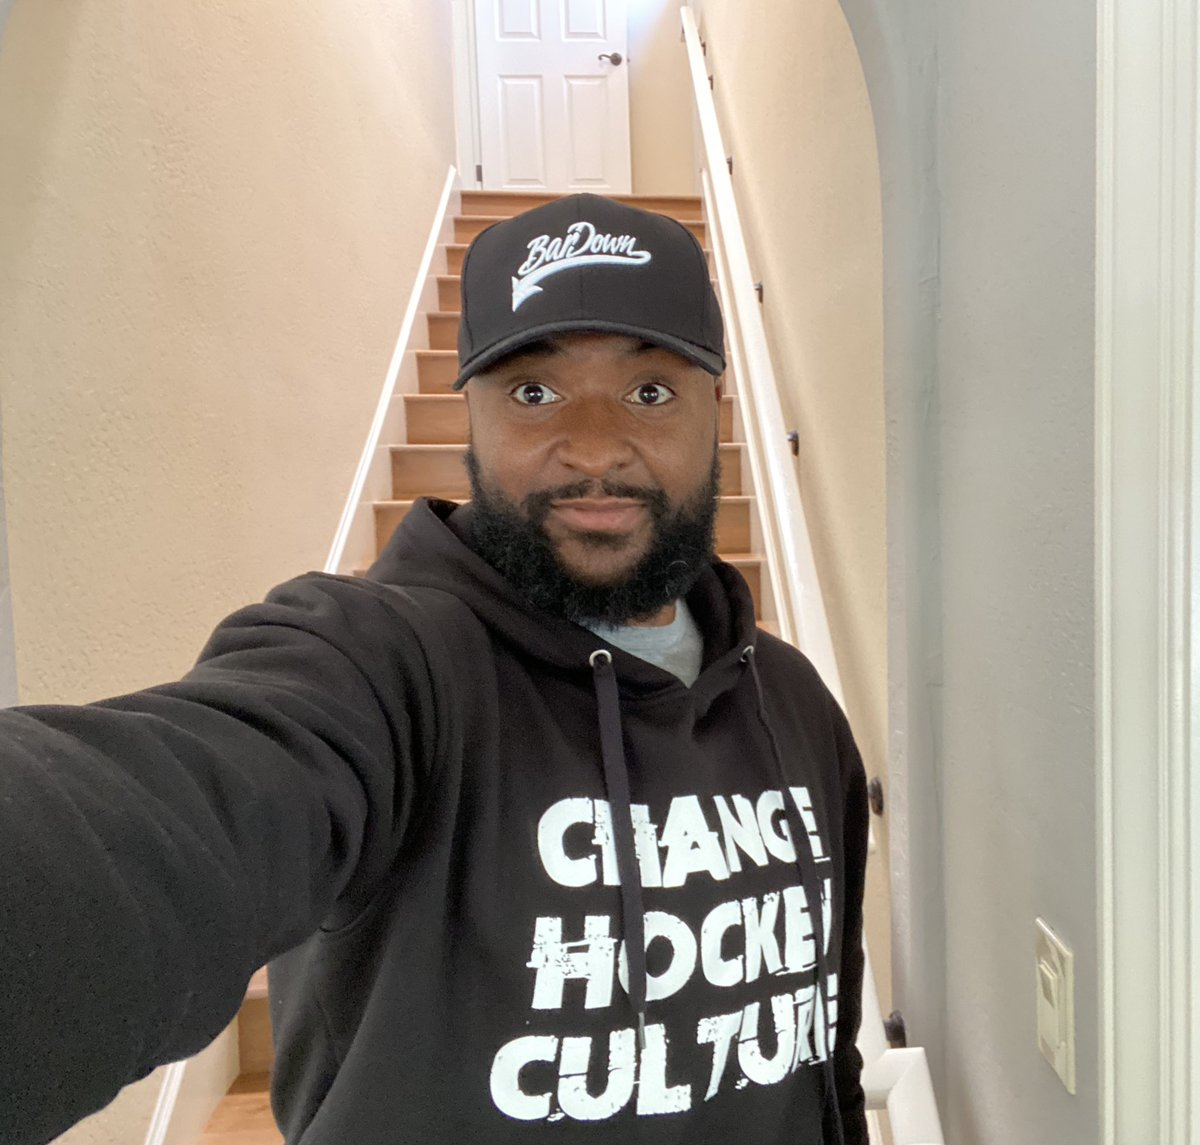 Joel Ward On Twitter Support The Hockey Diversity Alliance Changehockeyculture Puckracism Grab Your Own Shirt Or Hoodie At Https T Co 9ngqgxuj3t Https T Co Eeebayrwey